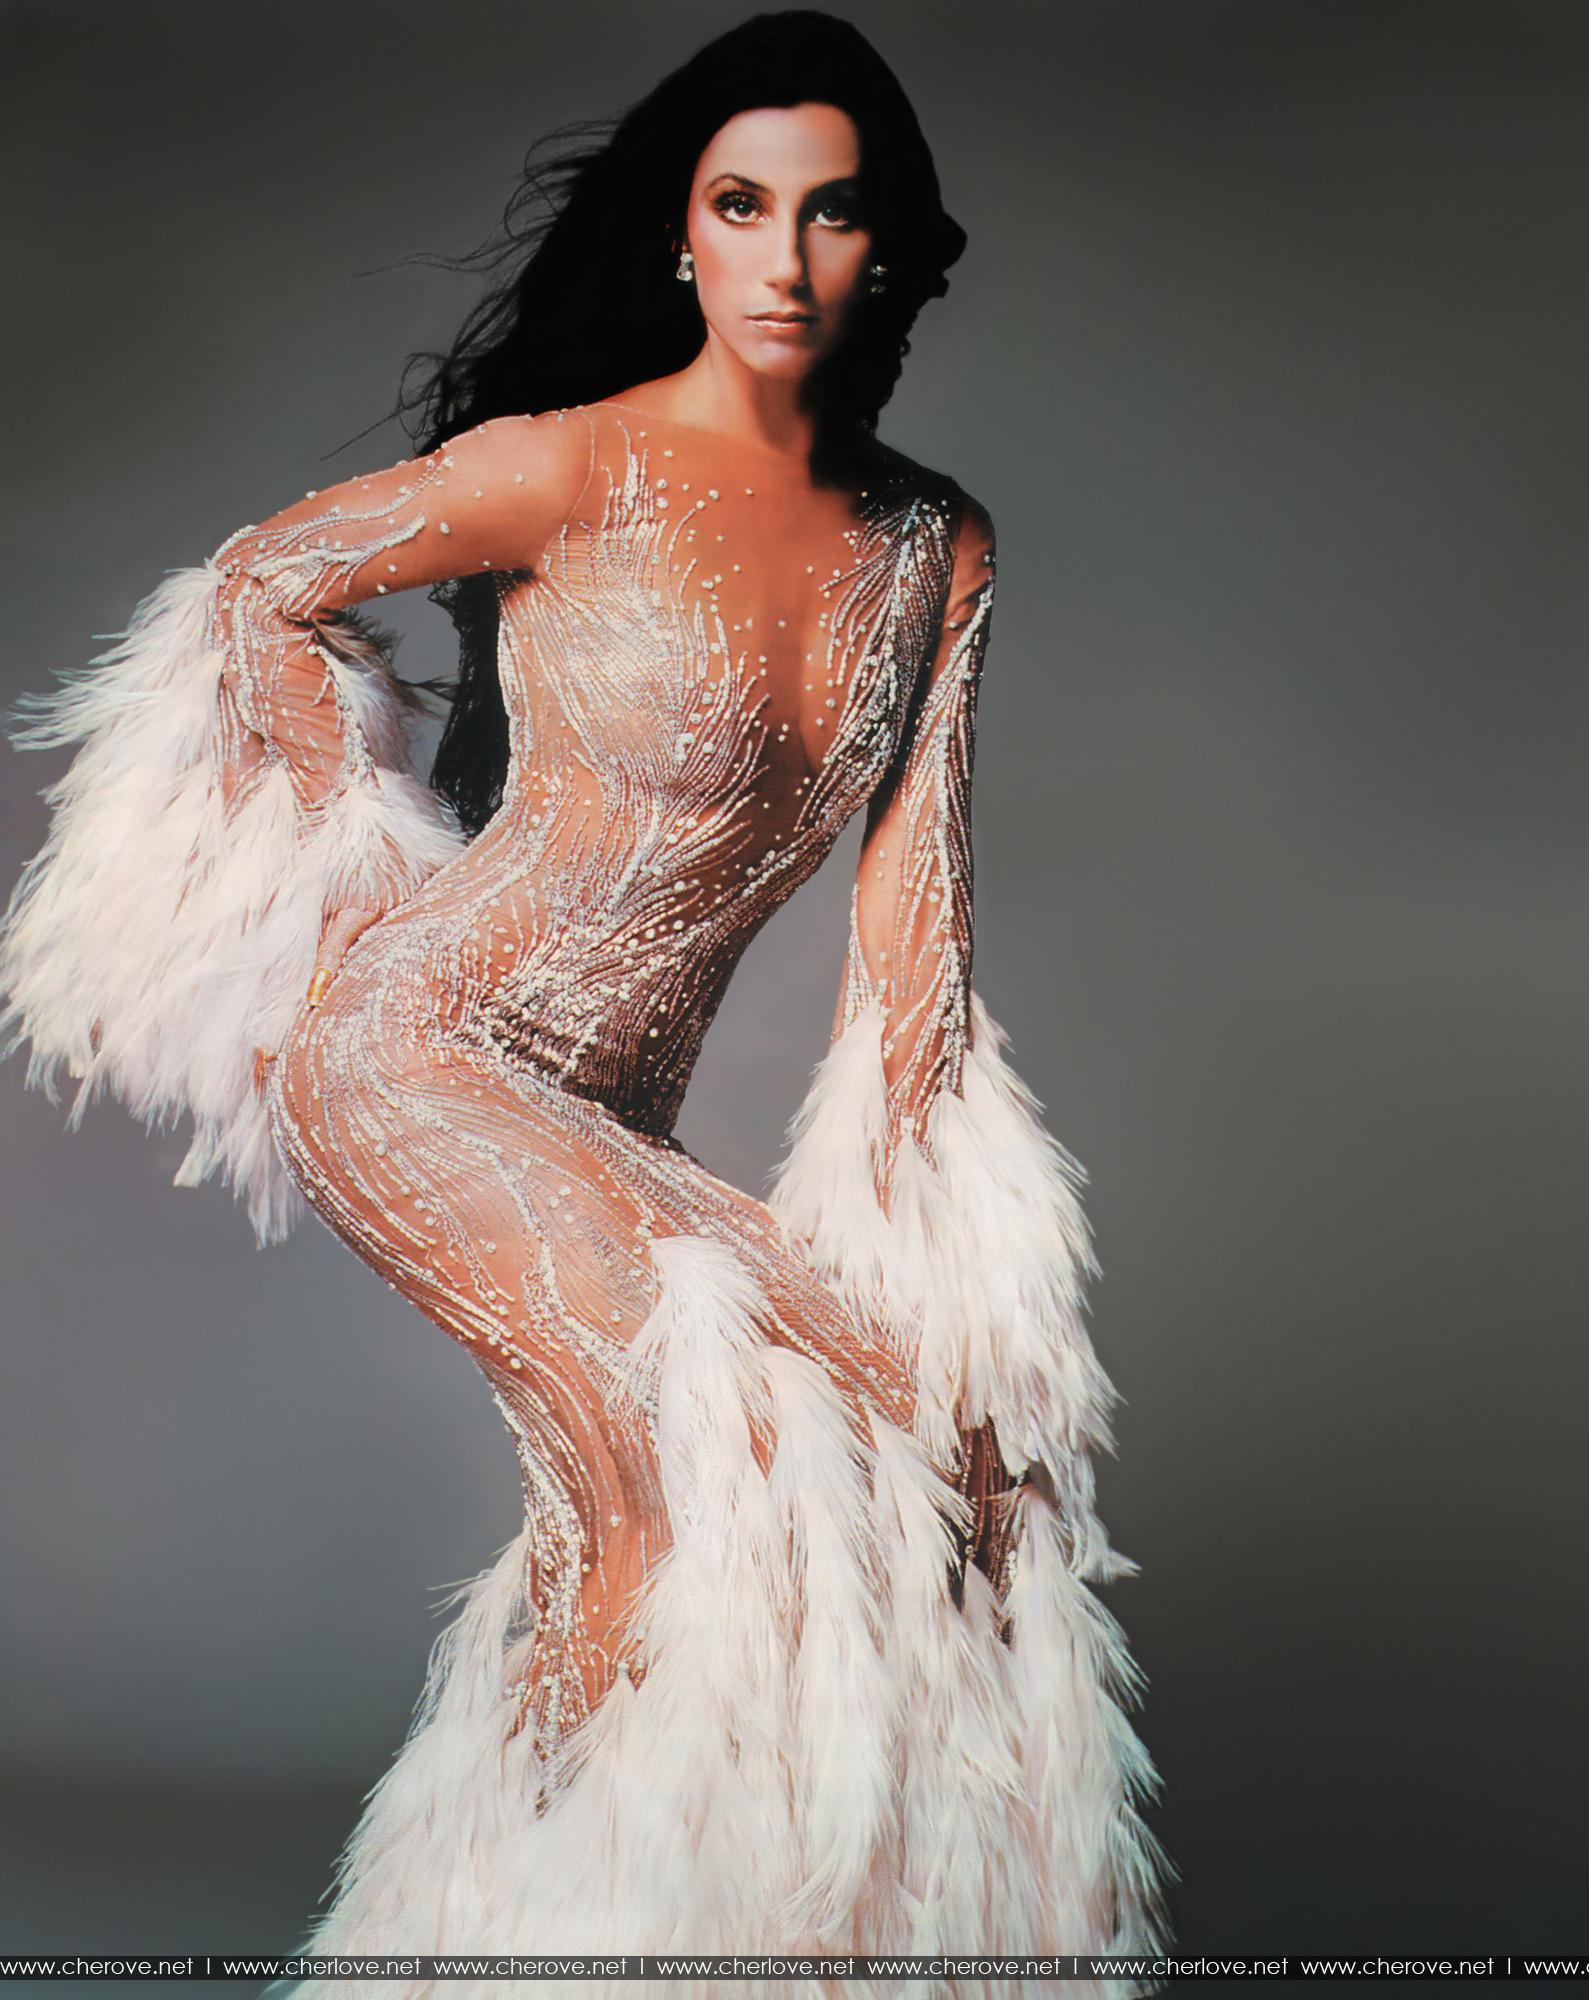 Cher, Time Magazine